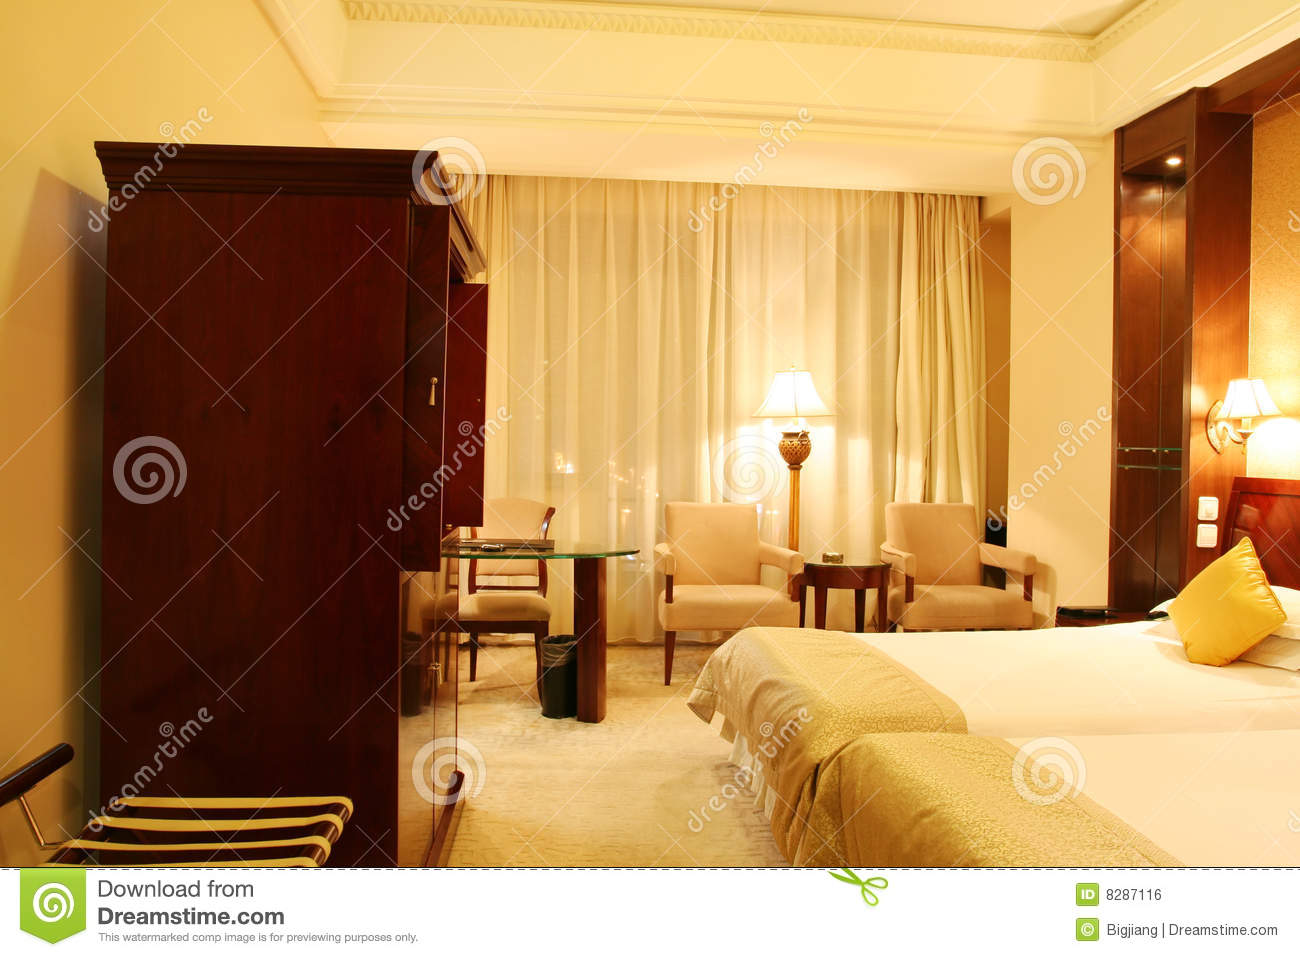 Two single bed in a bedroom royalty free stock image image 8287116 - Image bed room ...